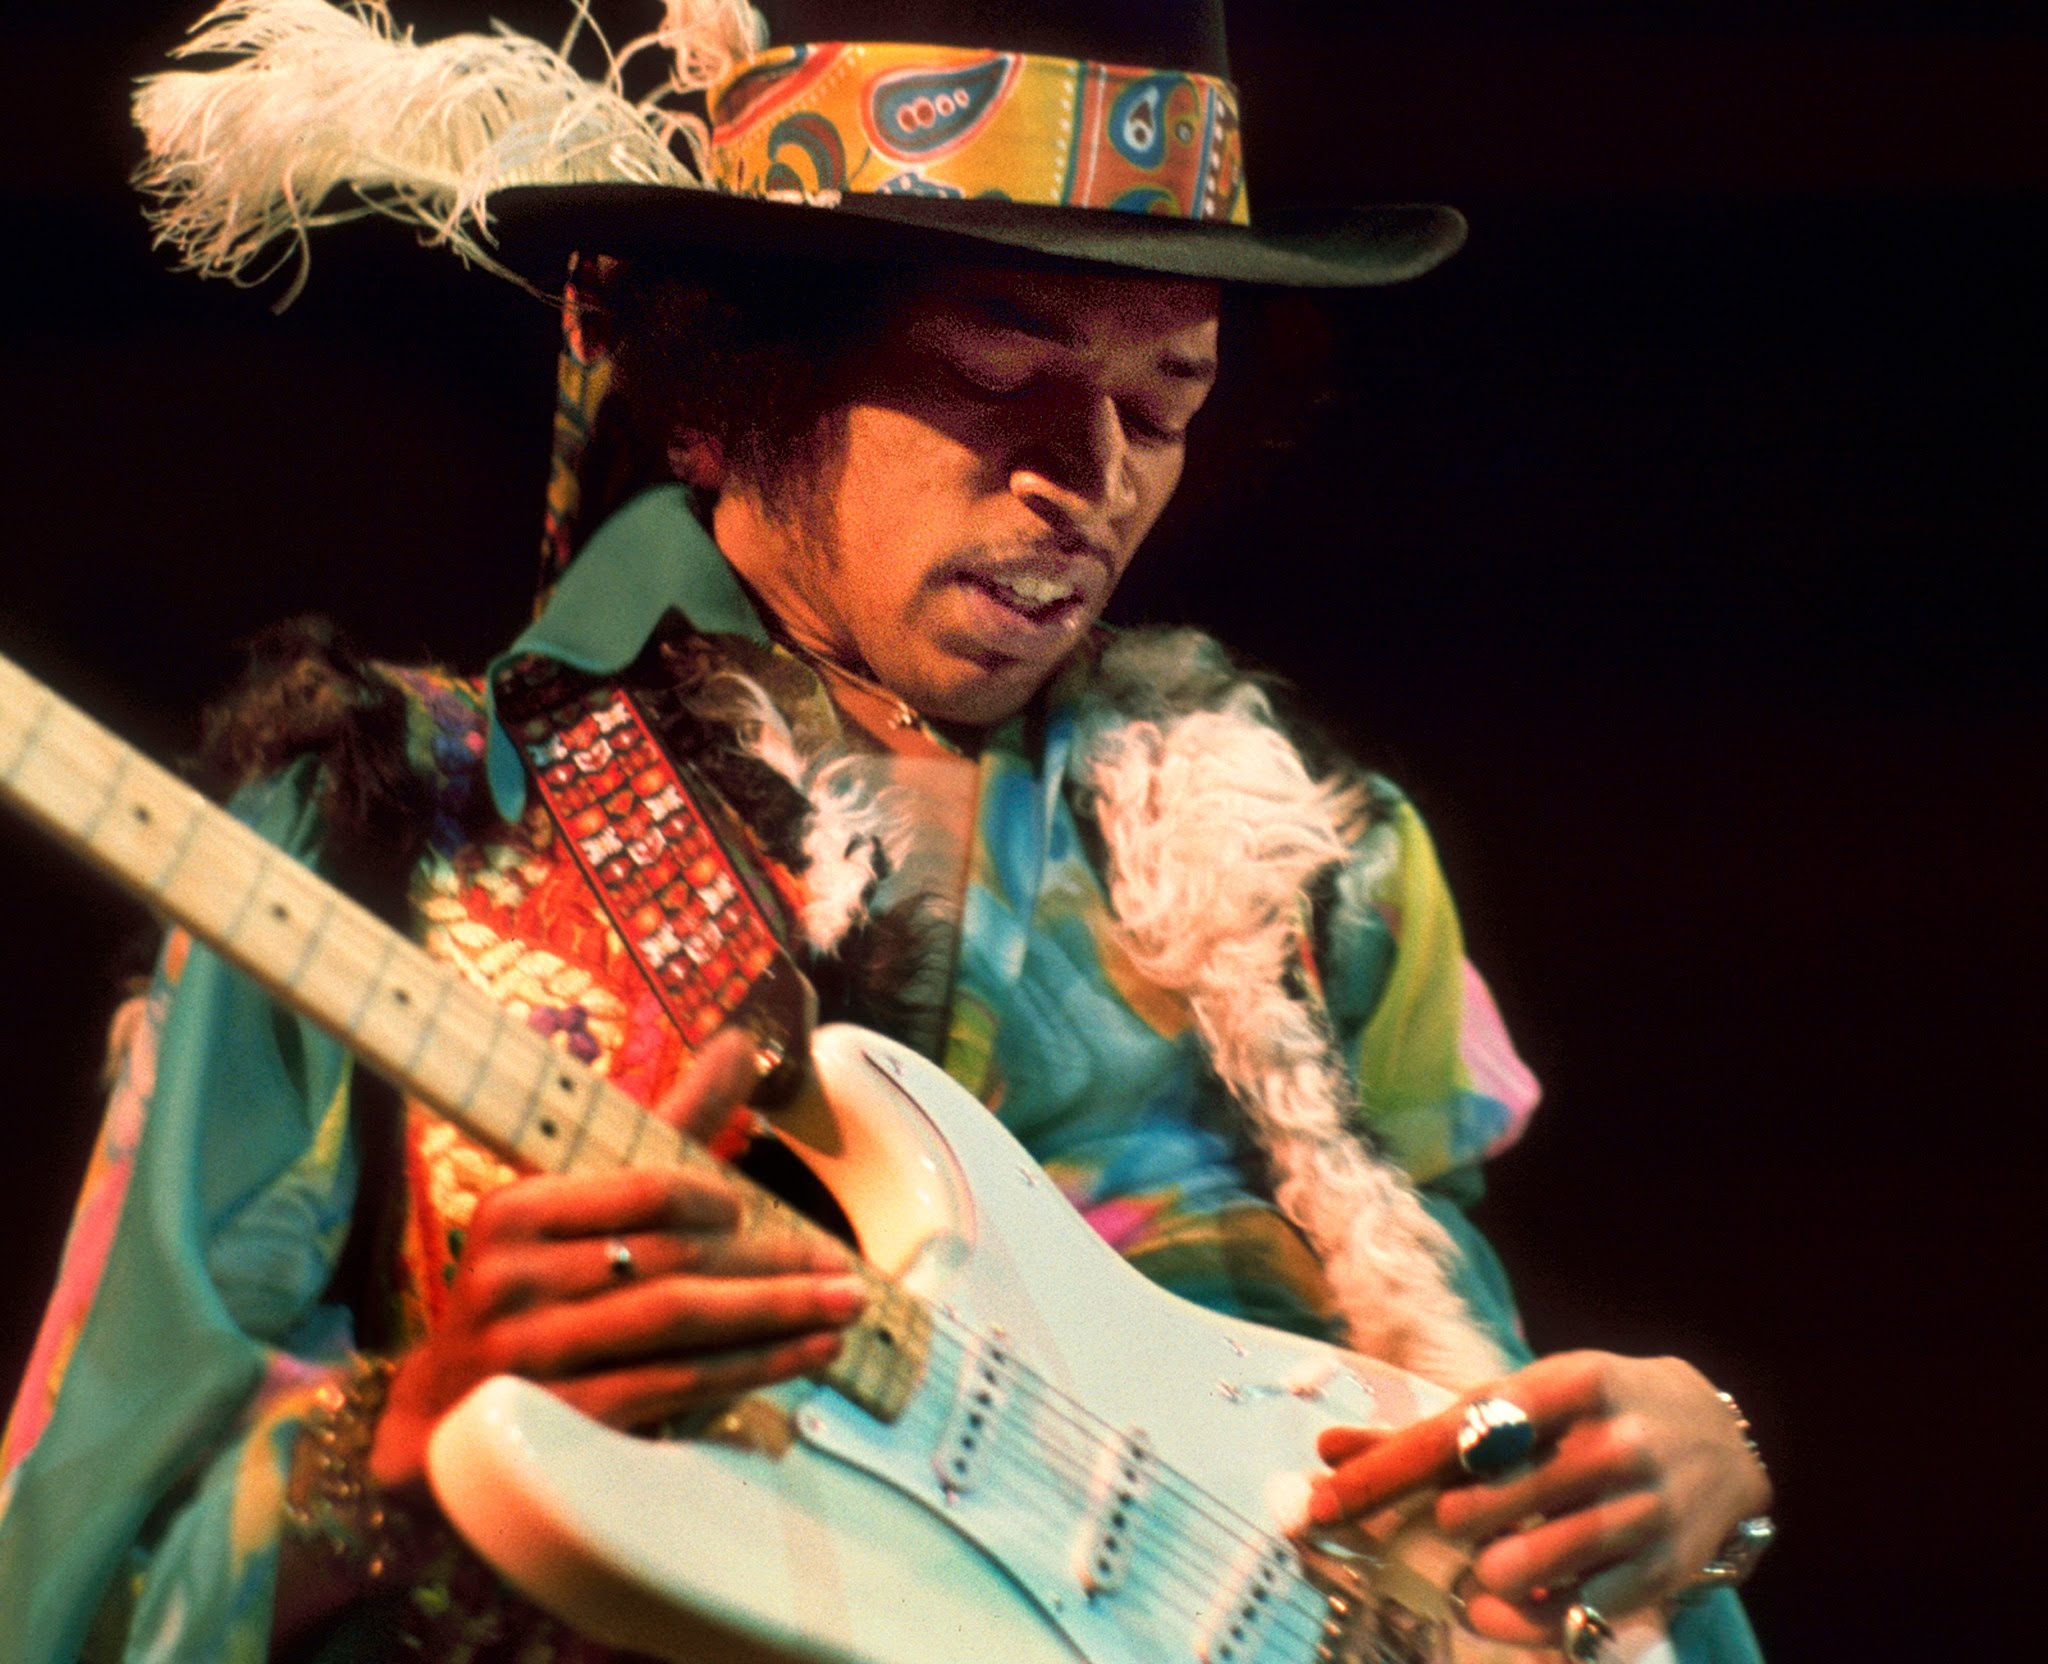 jimi hendrix b l u e s the blues munity